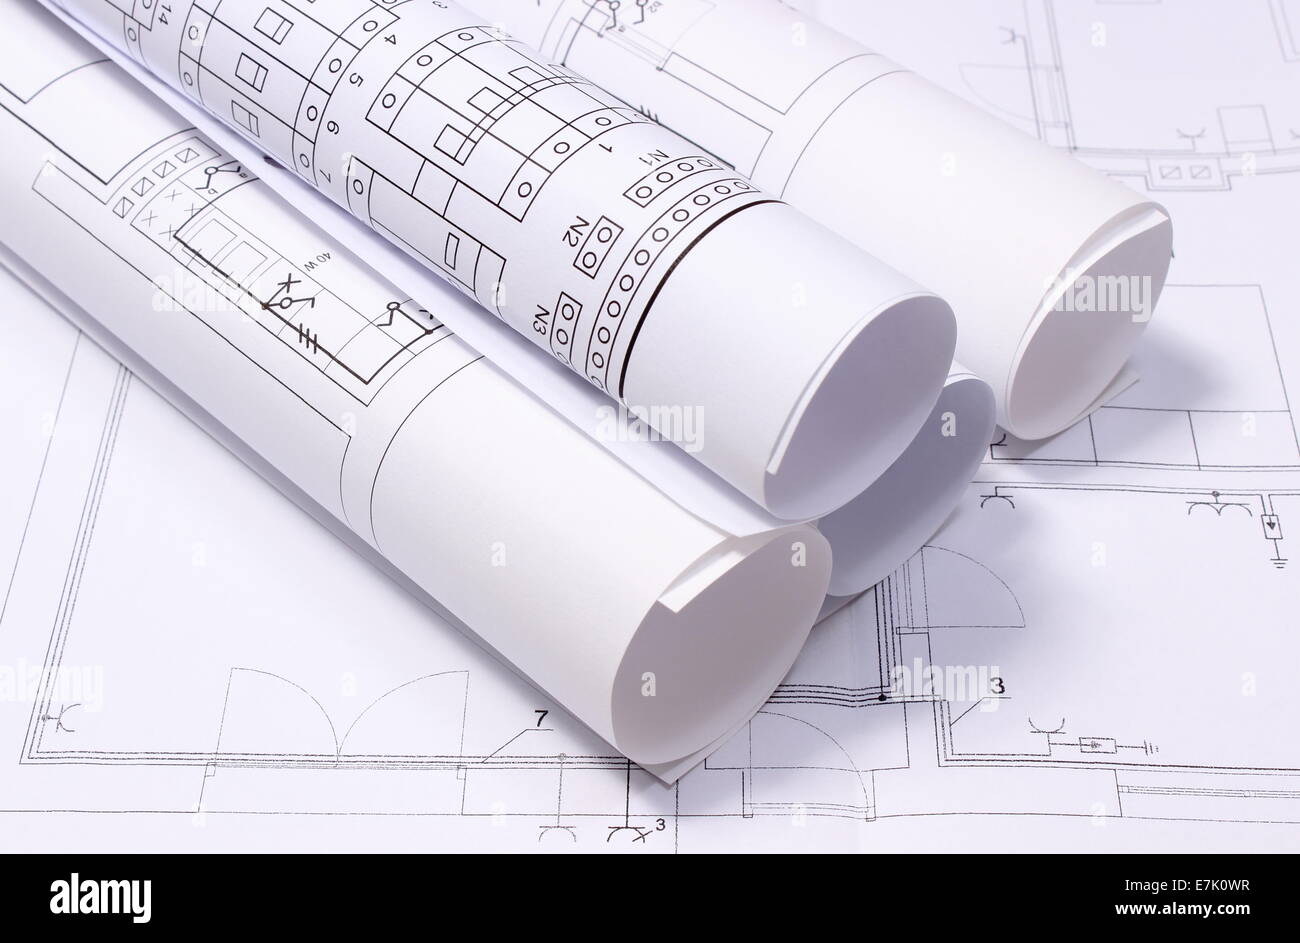 rolled electrical diagrams lying on construction drawing of house drawings for the projects engineer jobs